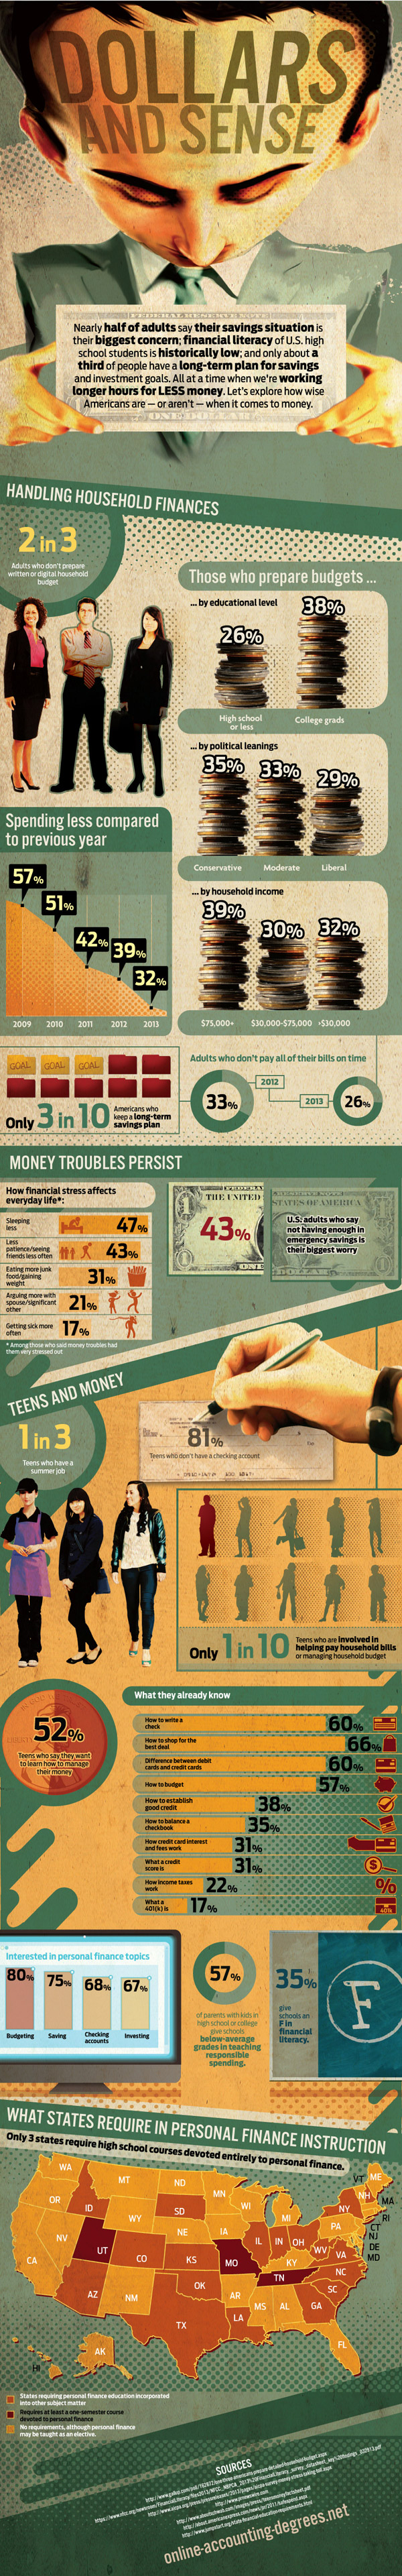 American Dollar Stories-Infographic